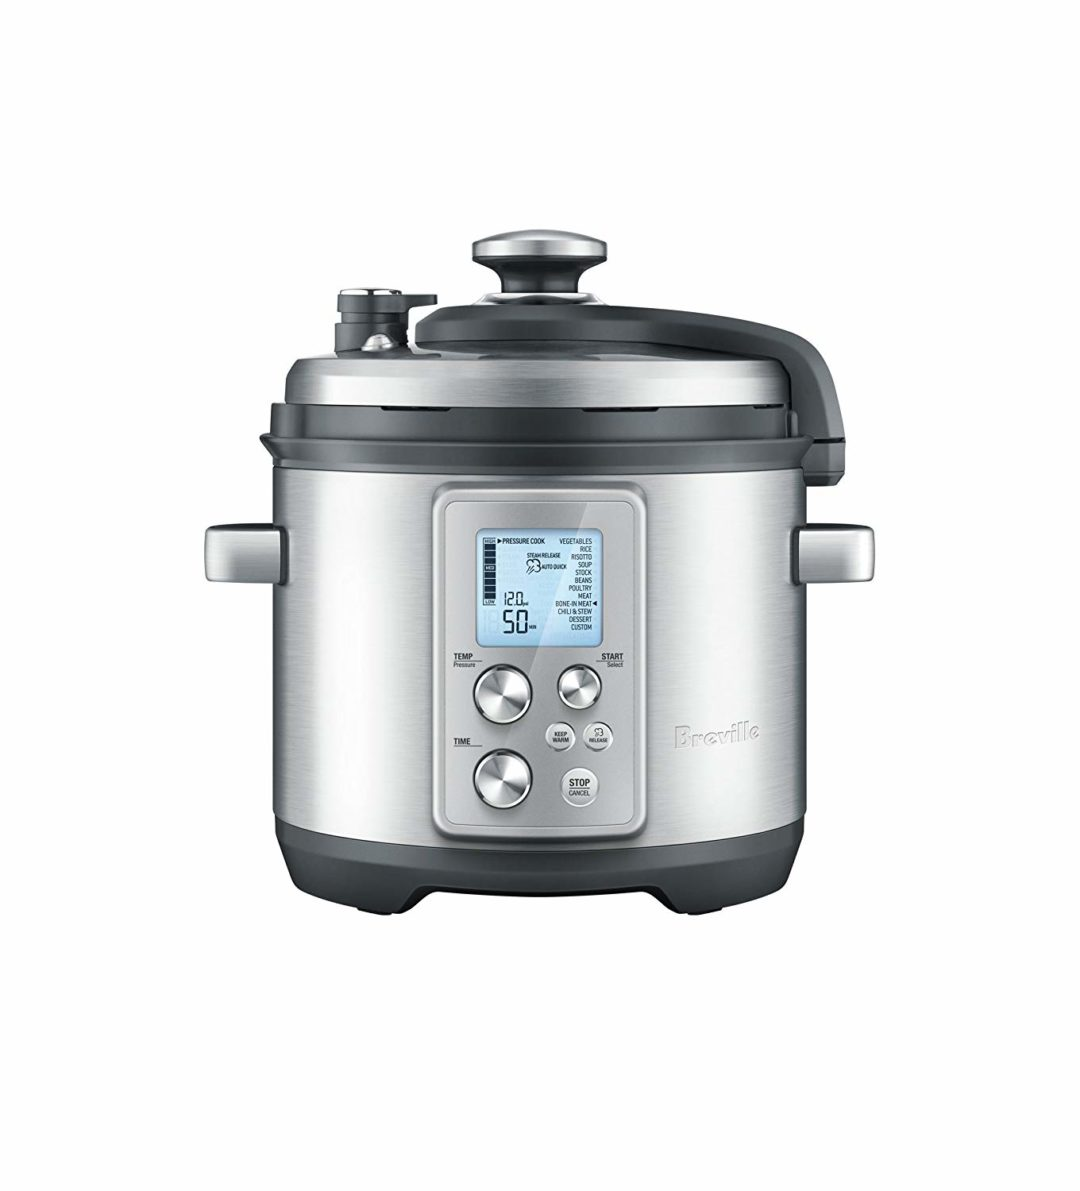 Breville BPR700BSS Fast Slow Pro Multi-Function Cooker Review